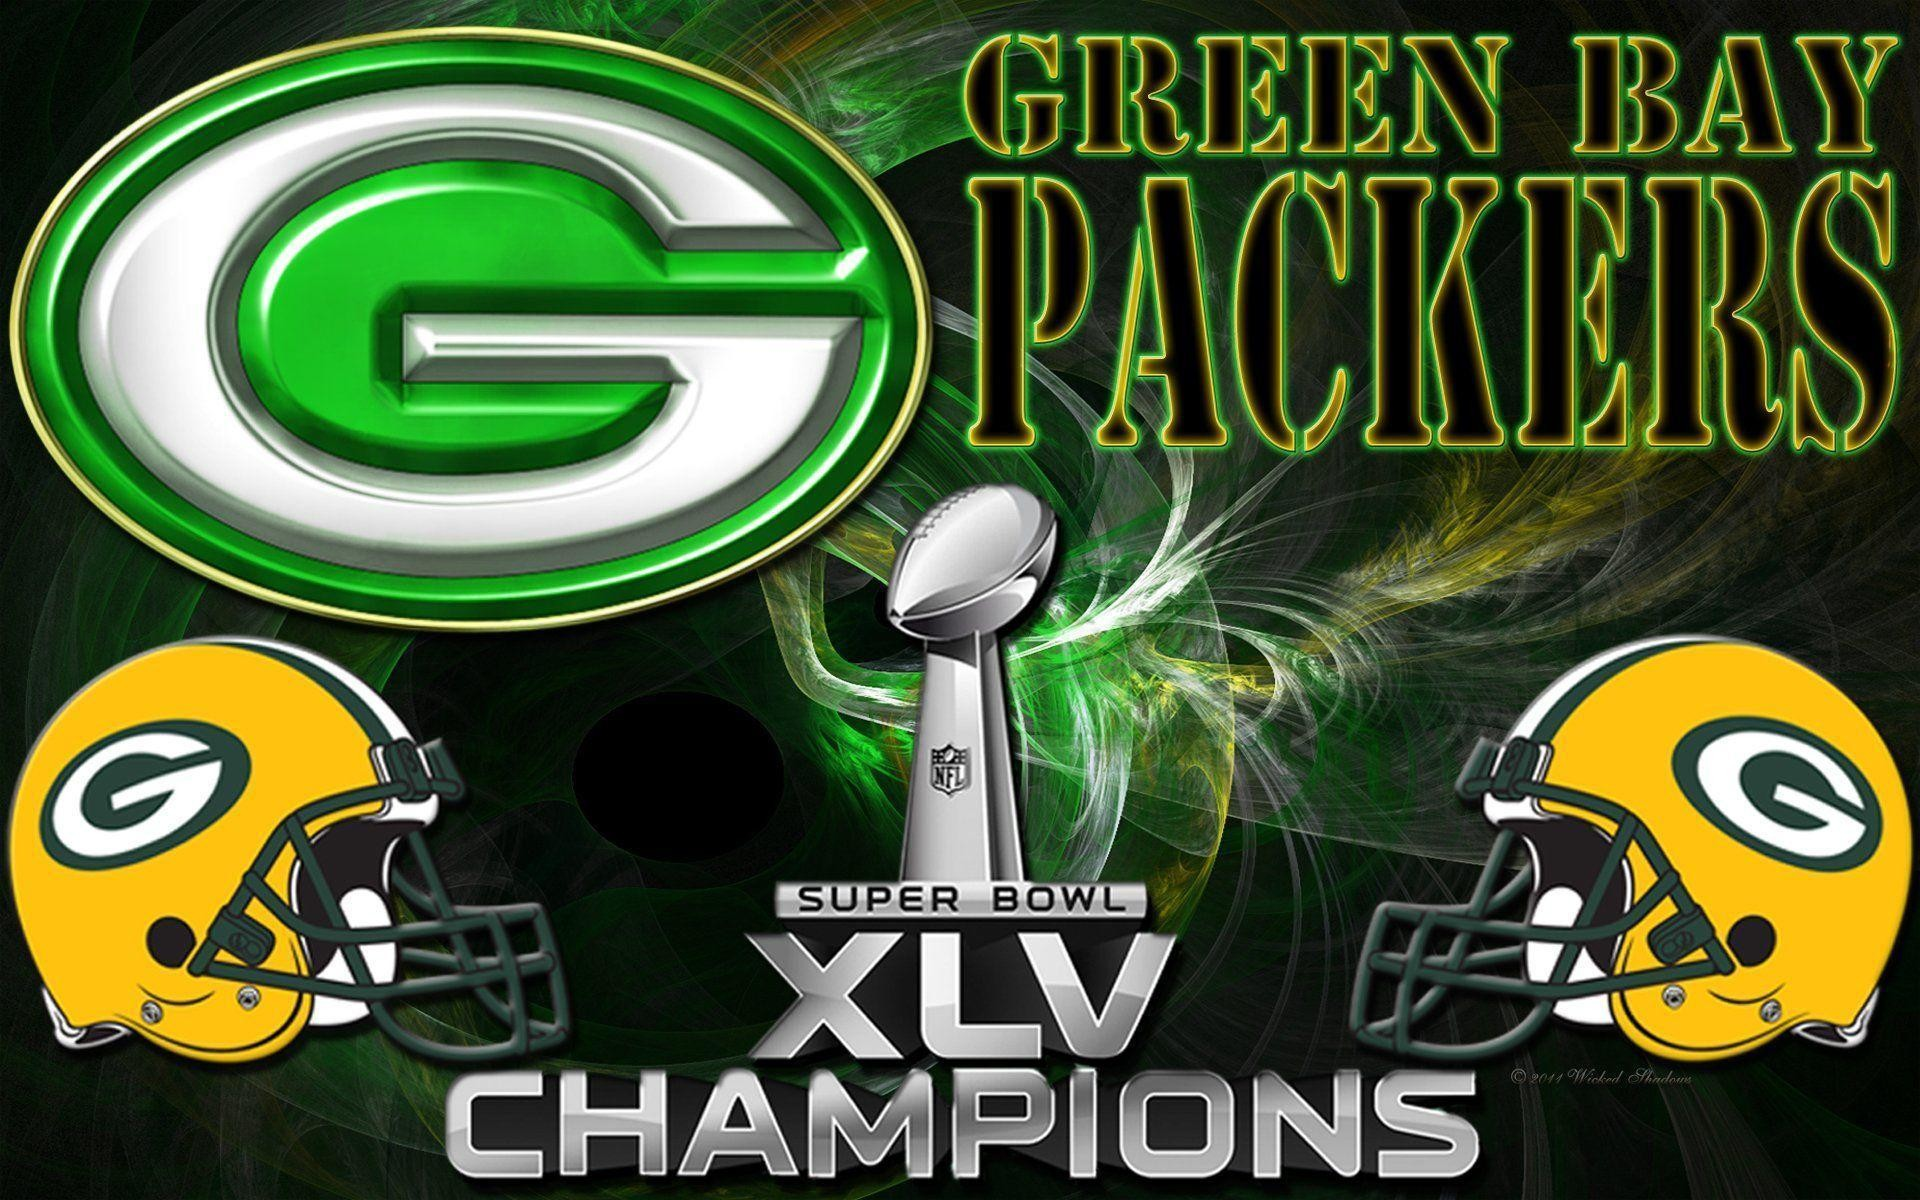 1920x1200 Green Bay Packers Wallpaper